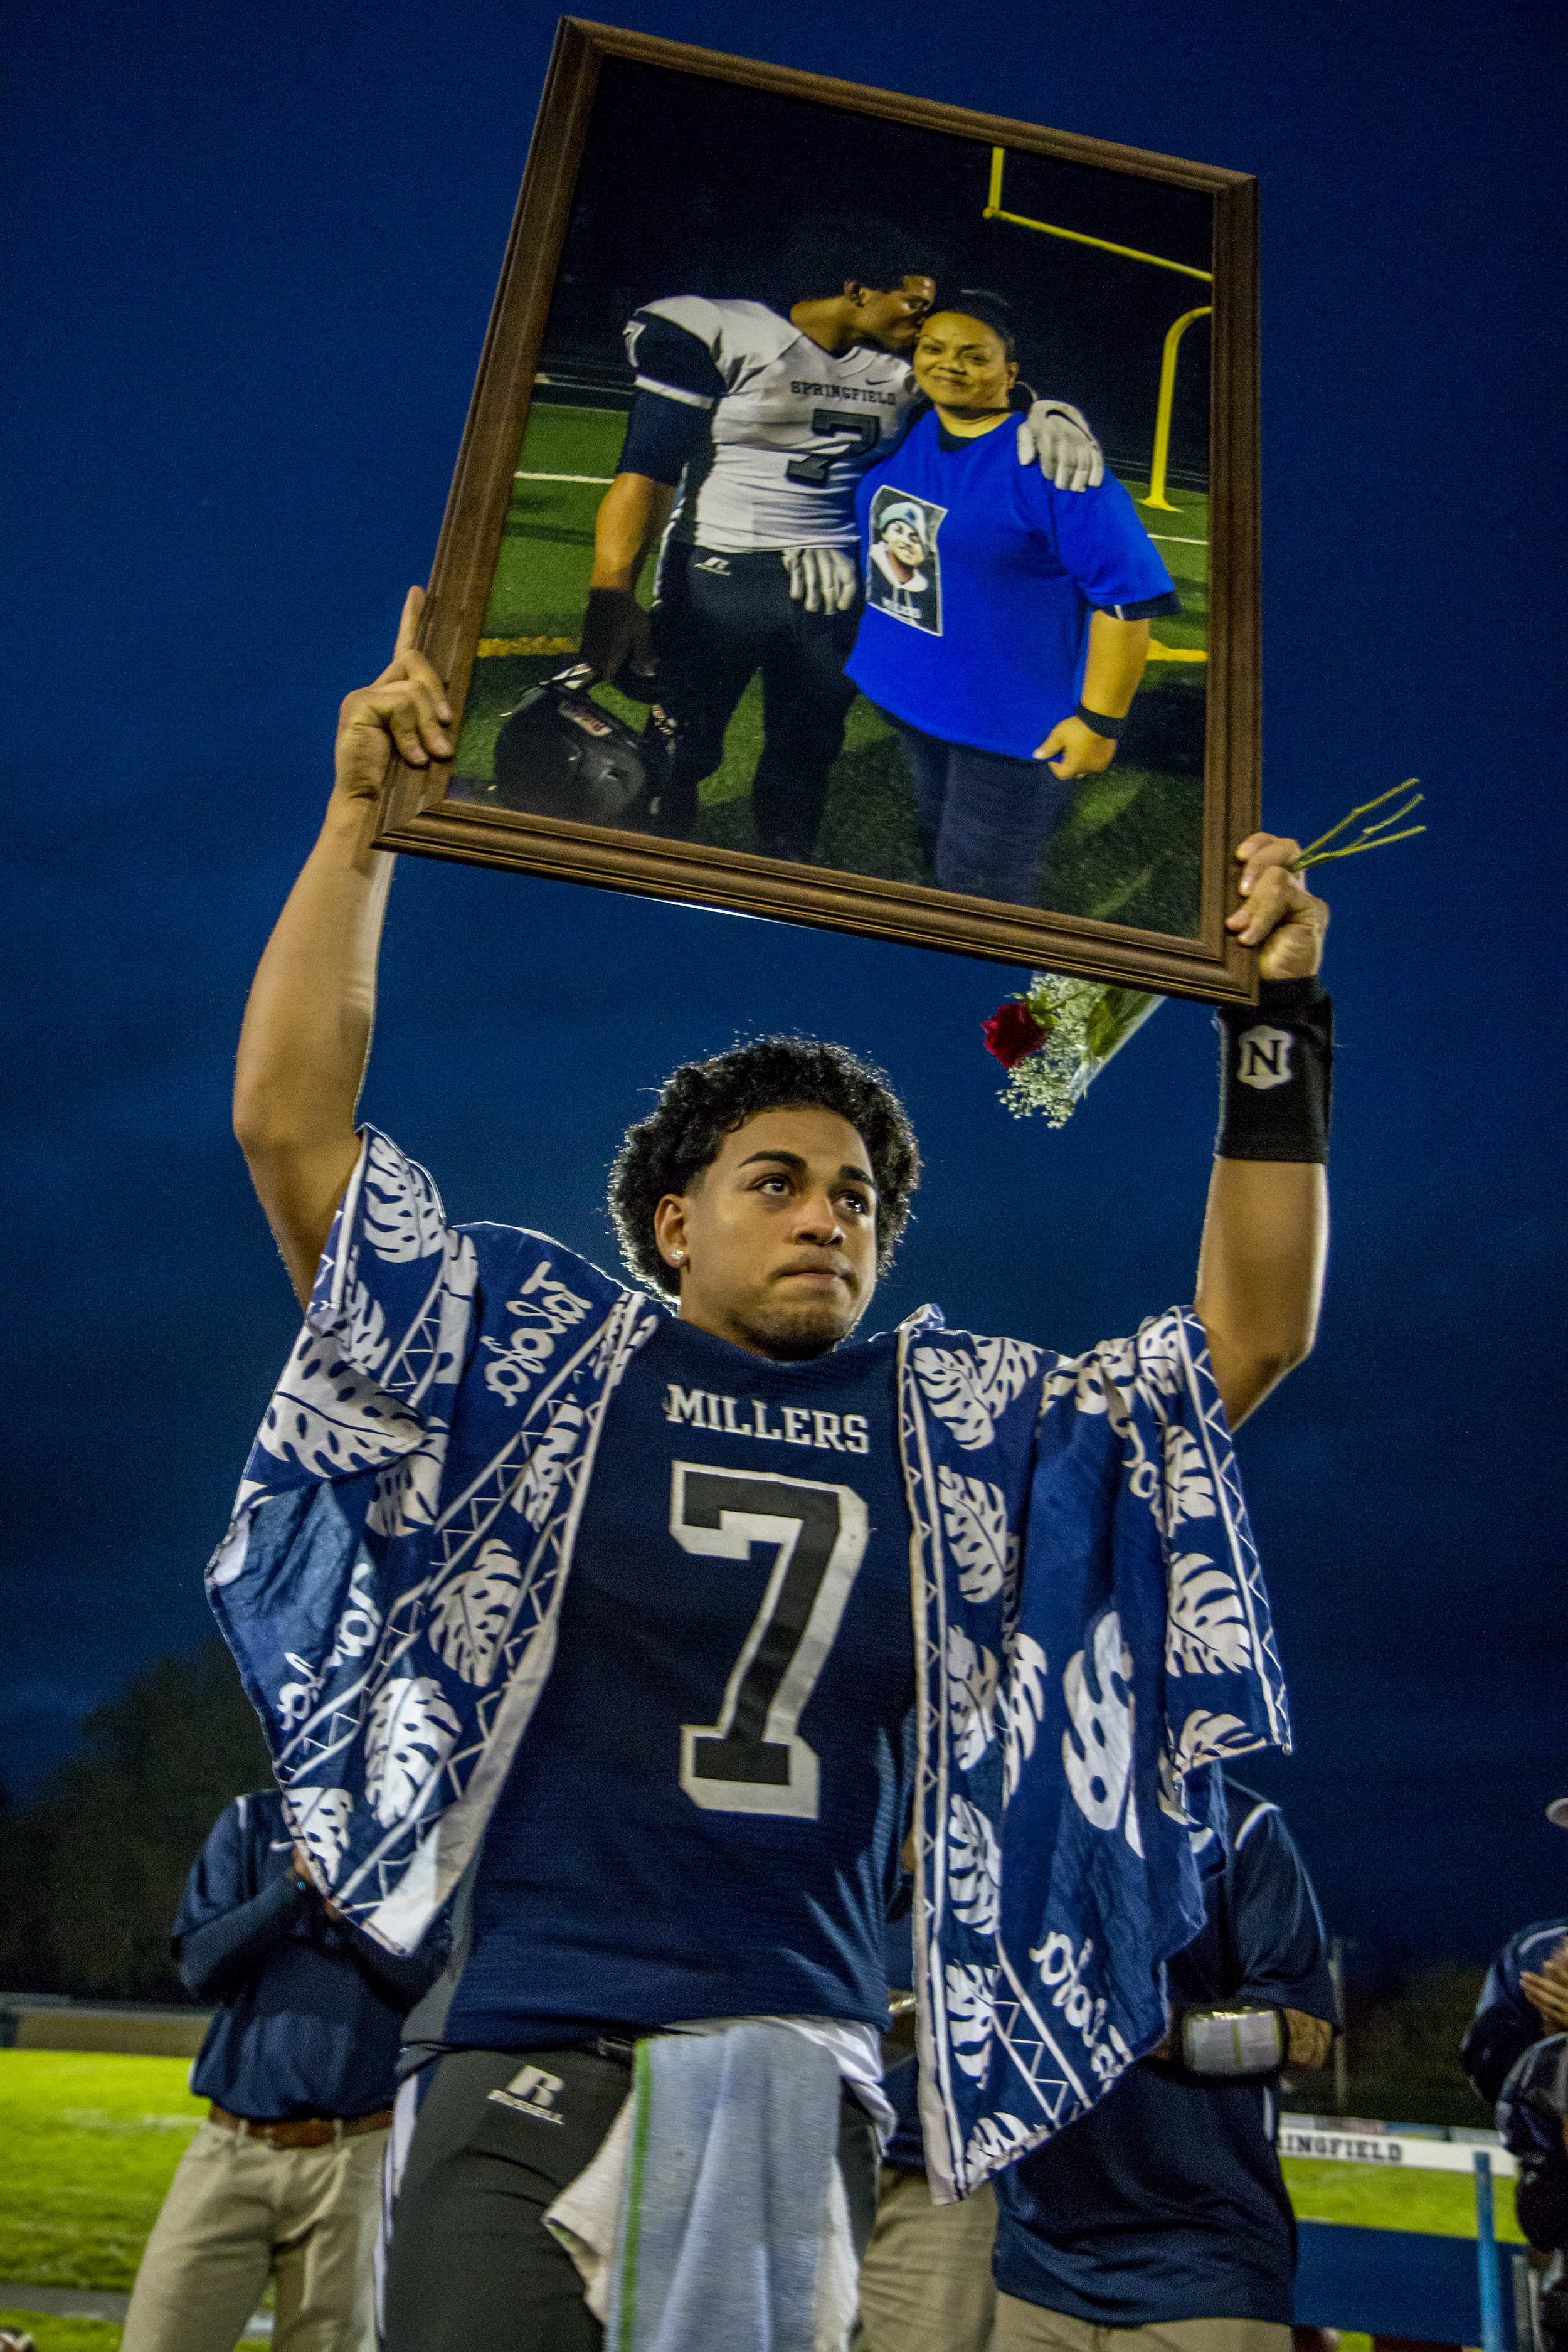 """Nick Ah Sam holds up a picture of his mother Margie at a football game at Springfield High School. His mother past away just days before the game. Within the first few minutes of the game, Ah Sam would take off on a long run to make a touchdown, a finger pointed to the sky in dedication to his mother. """"Football is just part of your life, life happens fast,"""" said the Millers coach to his assembled team after the game."""